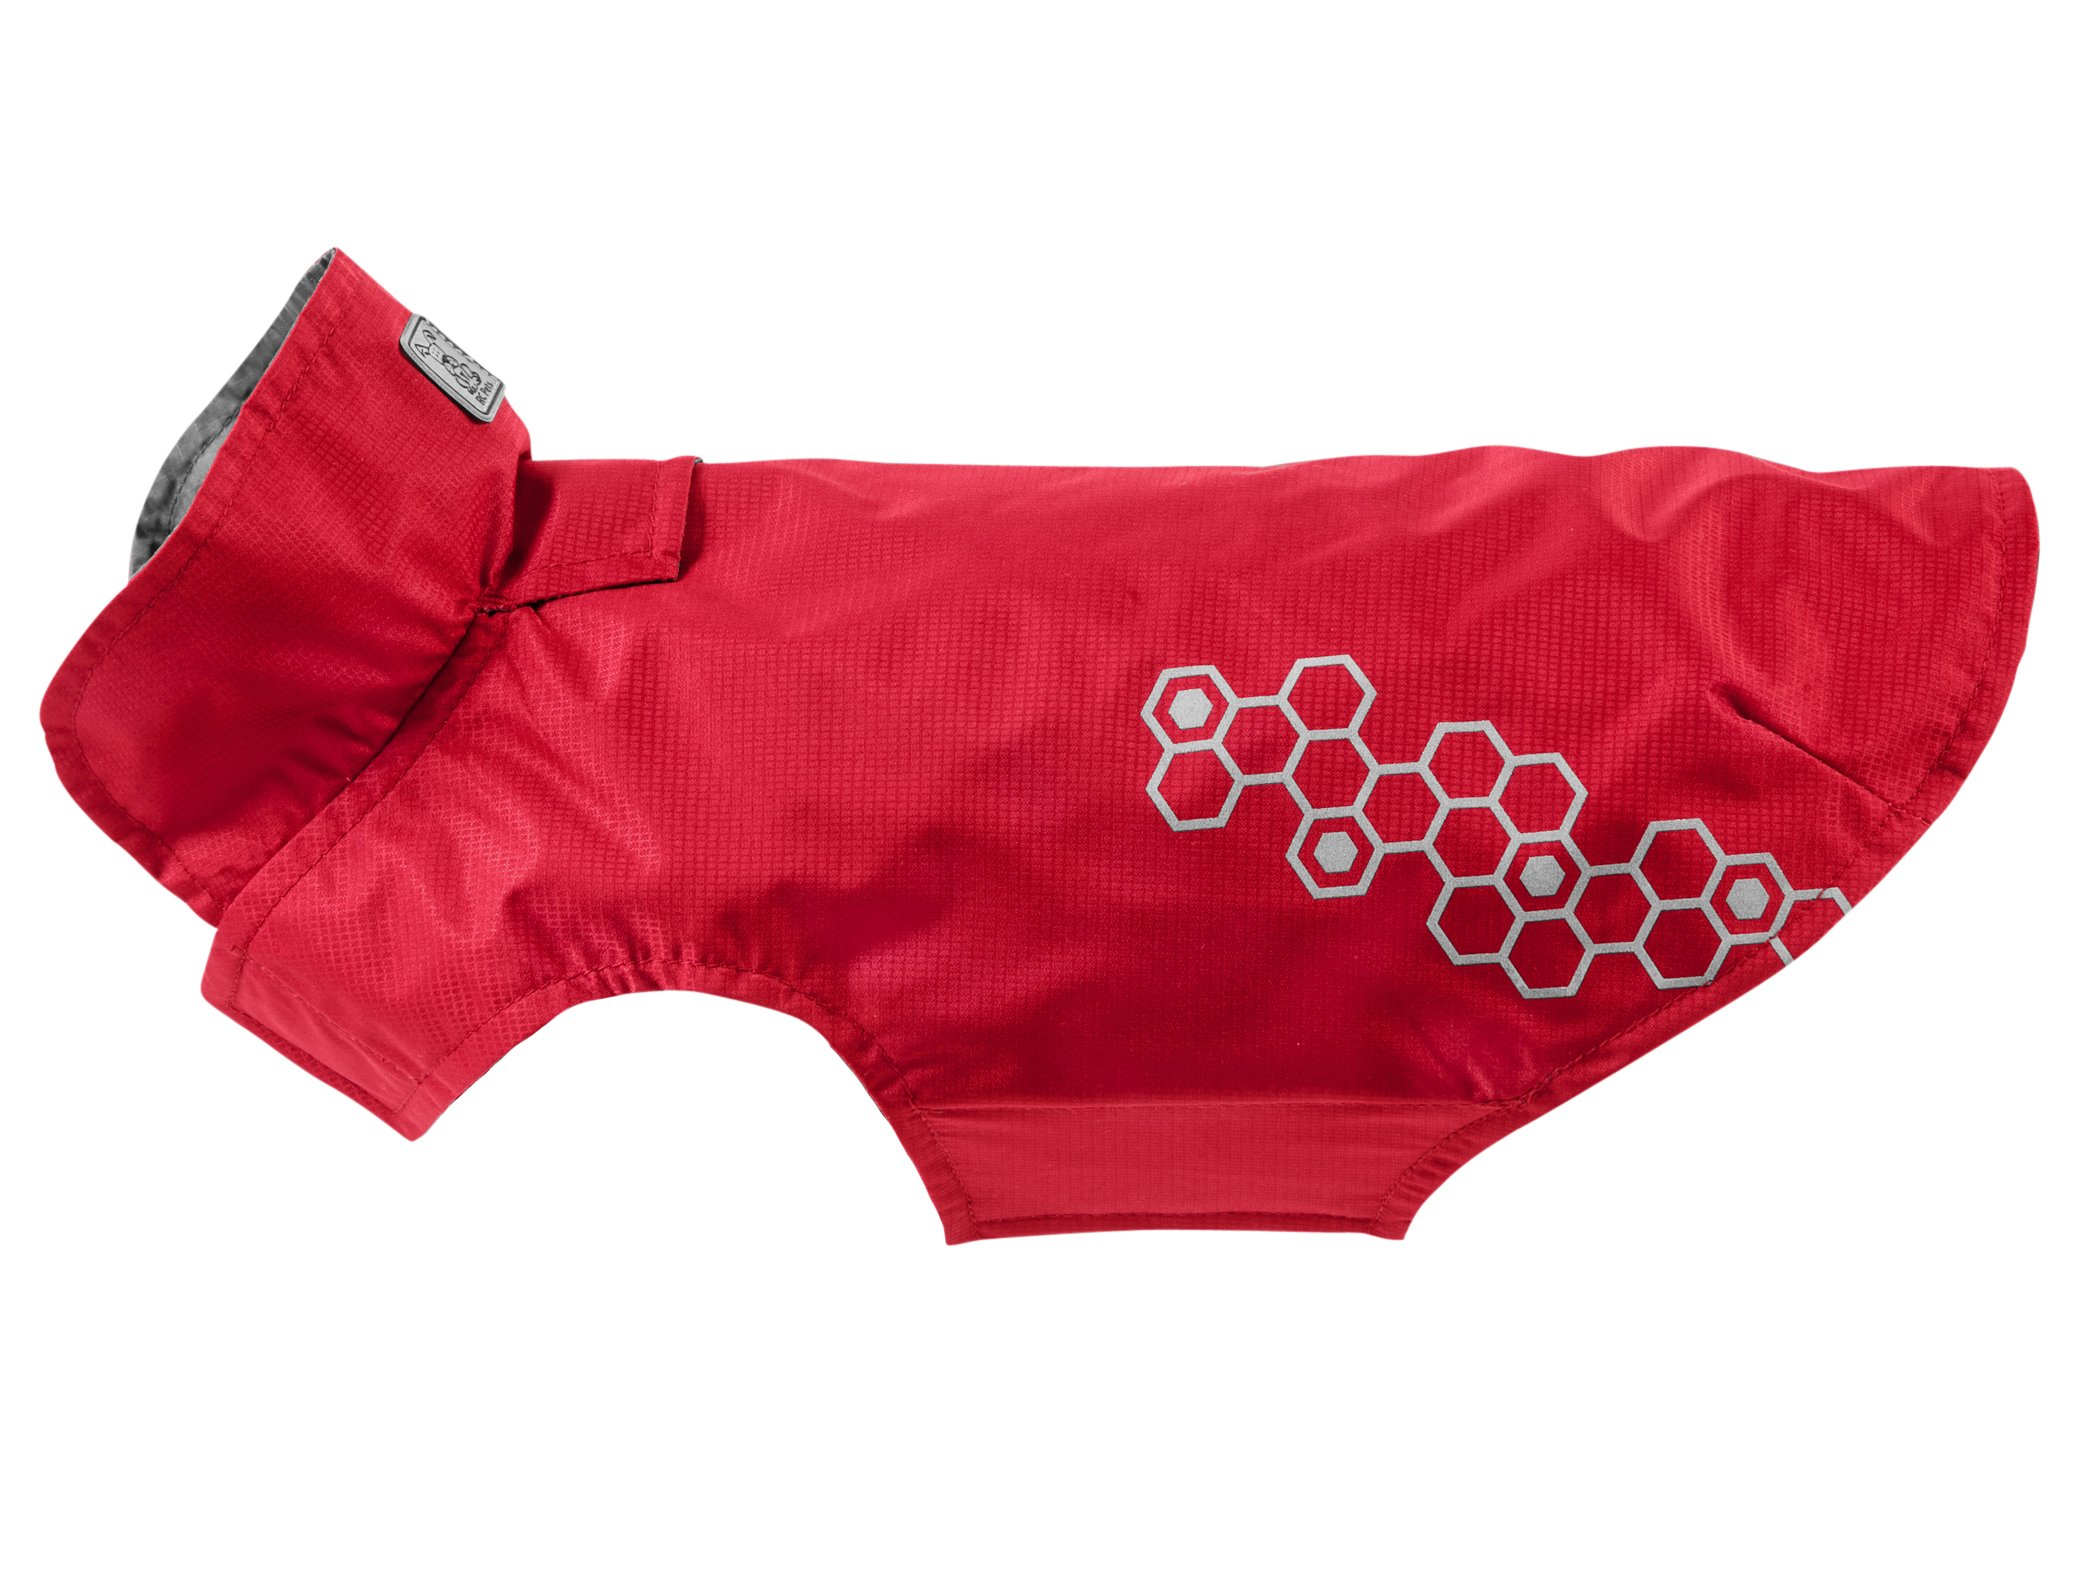 RC Pet Products Venture Shell Reflective, Water Resistant Dog Coat, Size 22, Crimson